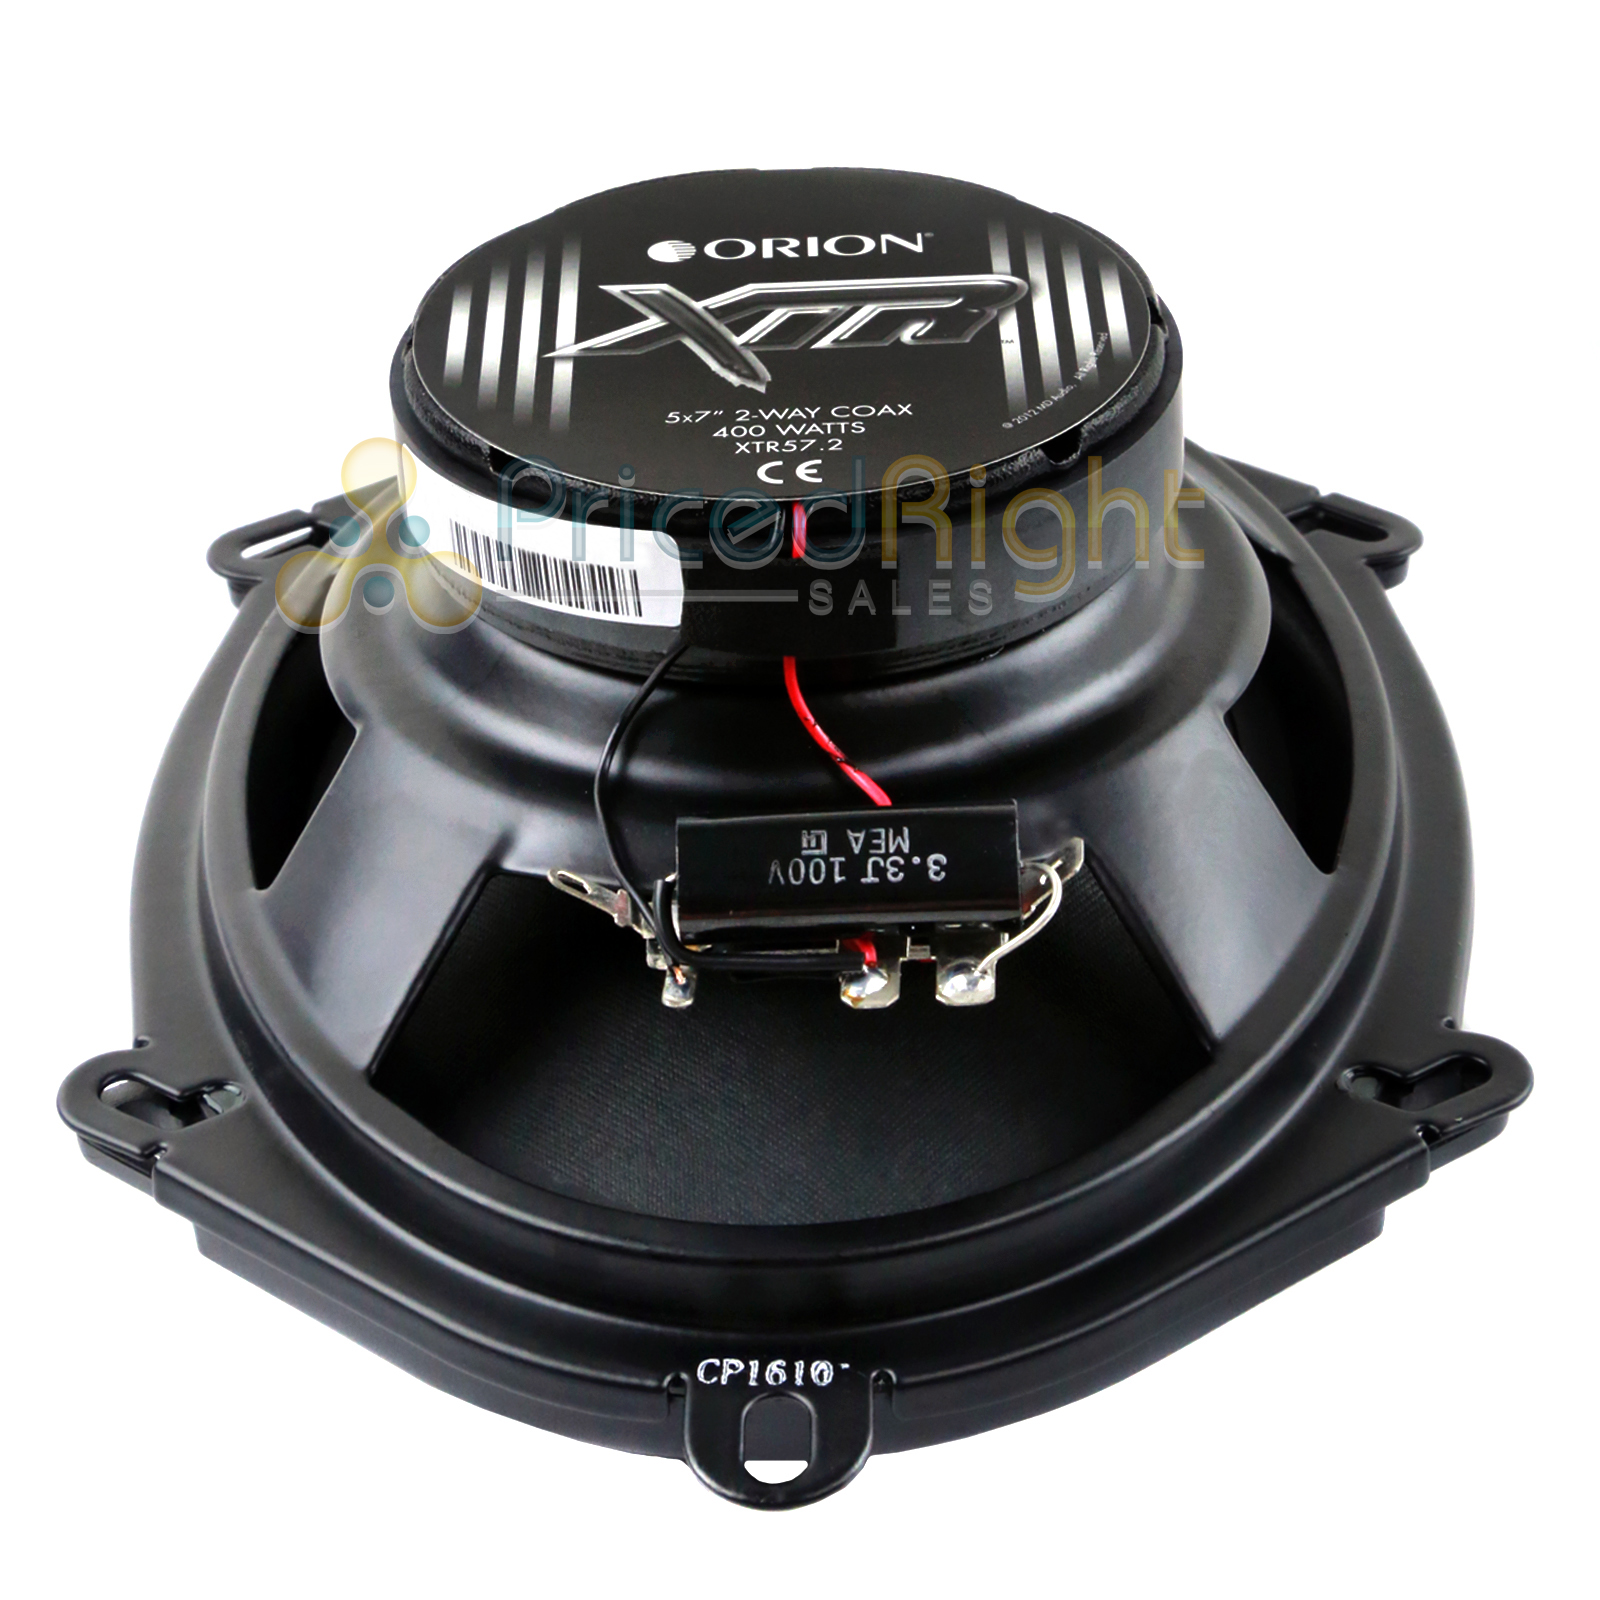 2 Orion Xtr572 Xtr 5 X 7 Coaxial Speakers Max Music Power 400 Subwoofer Wiring Watts 4 Ohm